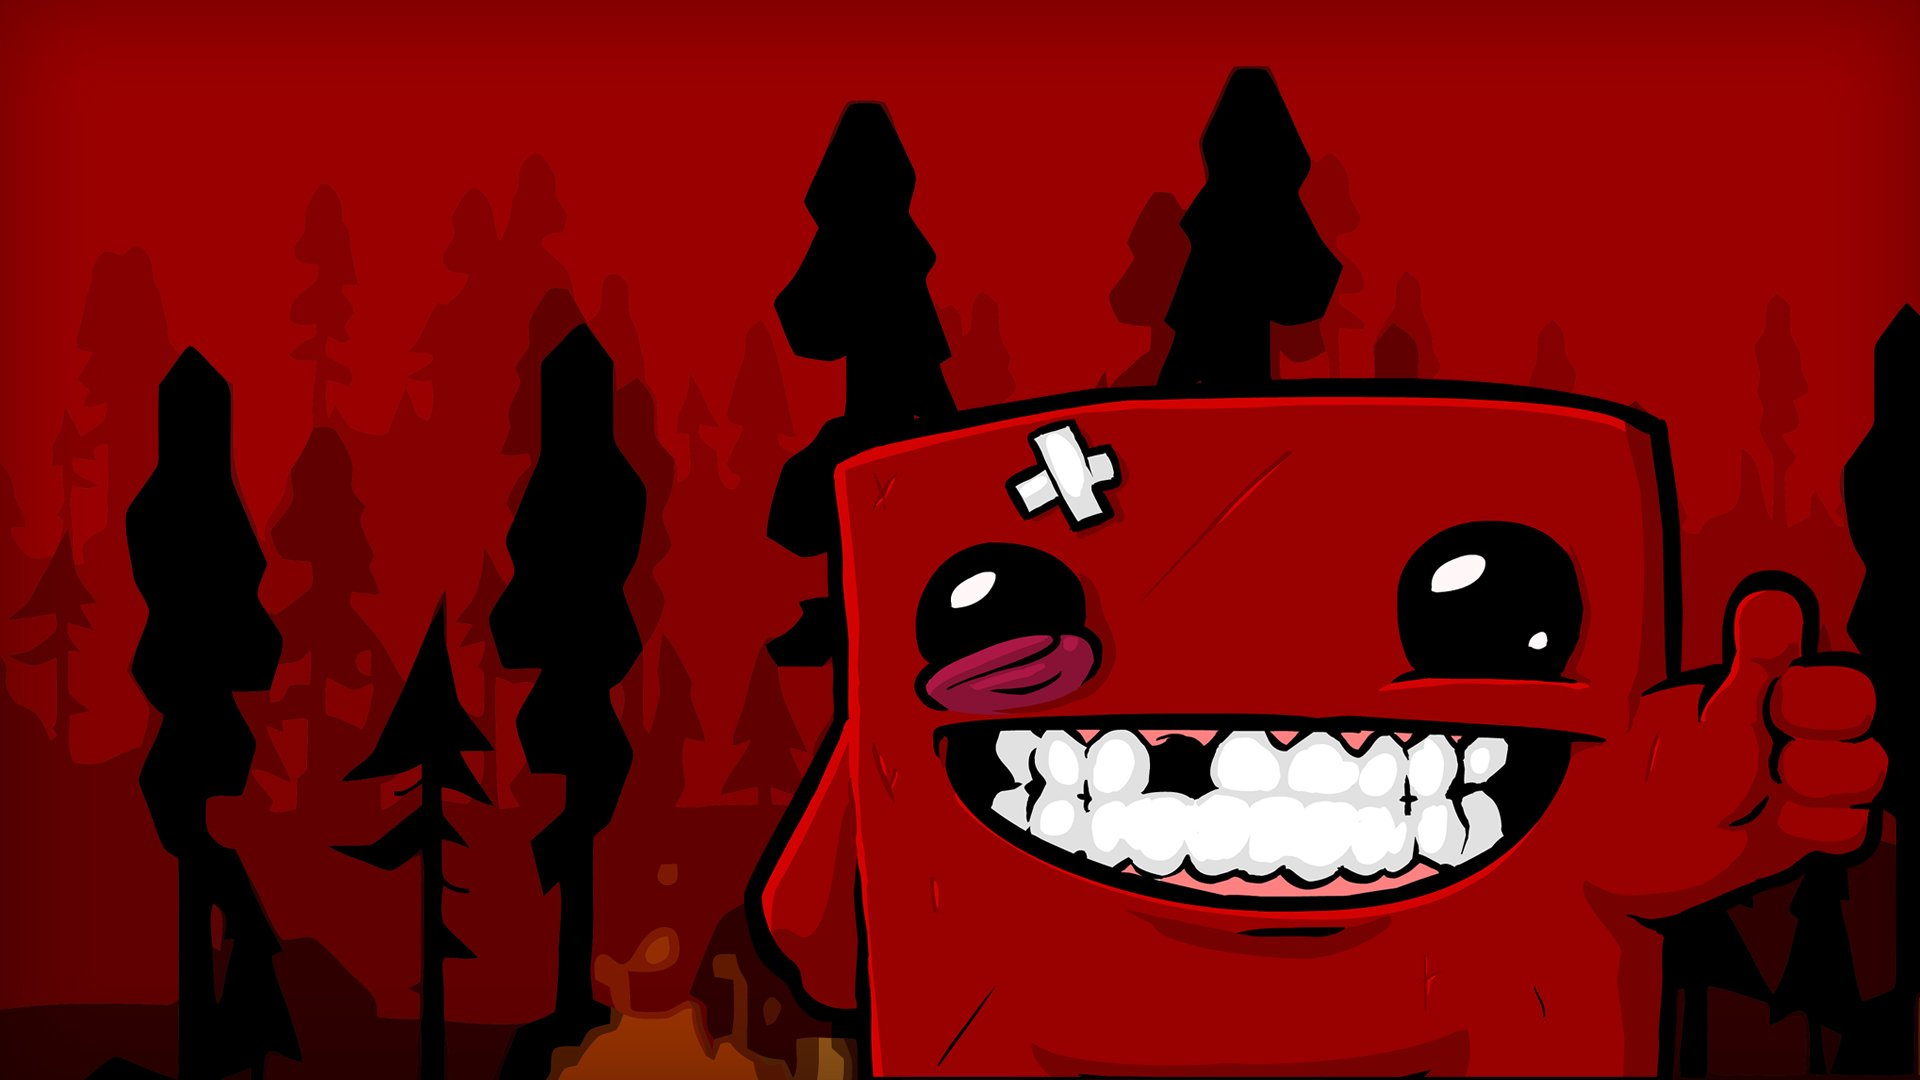 14 Super Meat Boy Hd Wallpapers Background Images Wallpaper Abyss